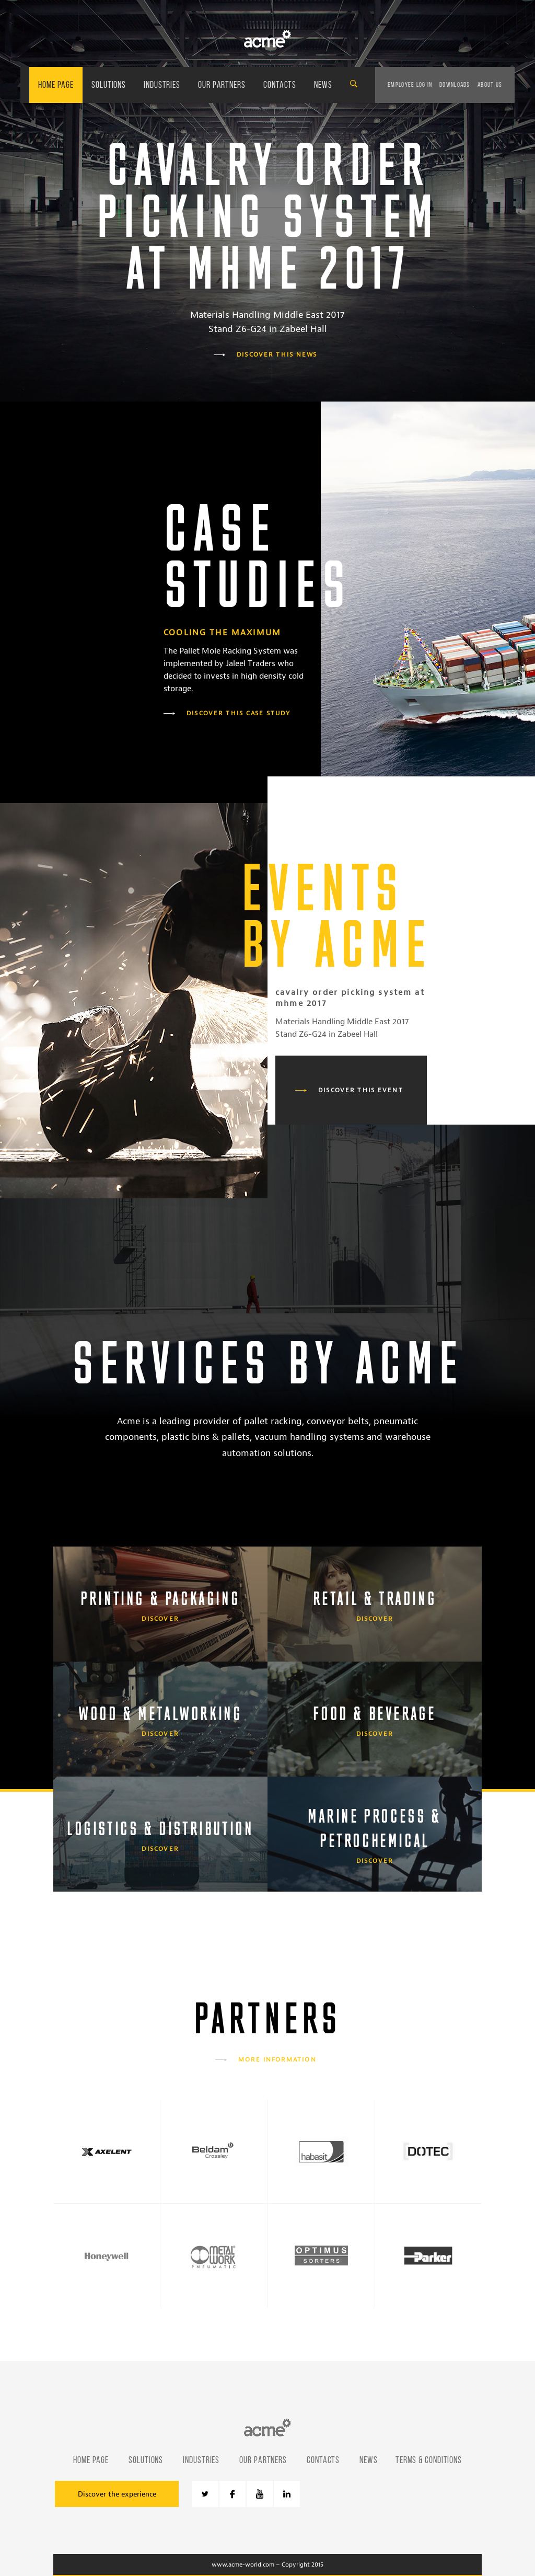 Acme Industrial Hardware Trading (L l c) Competitors